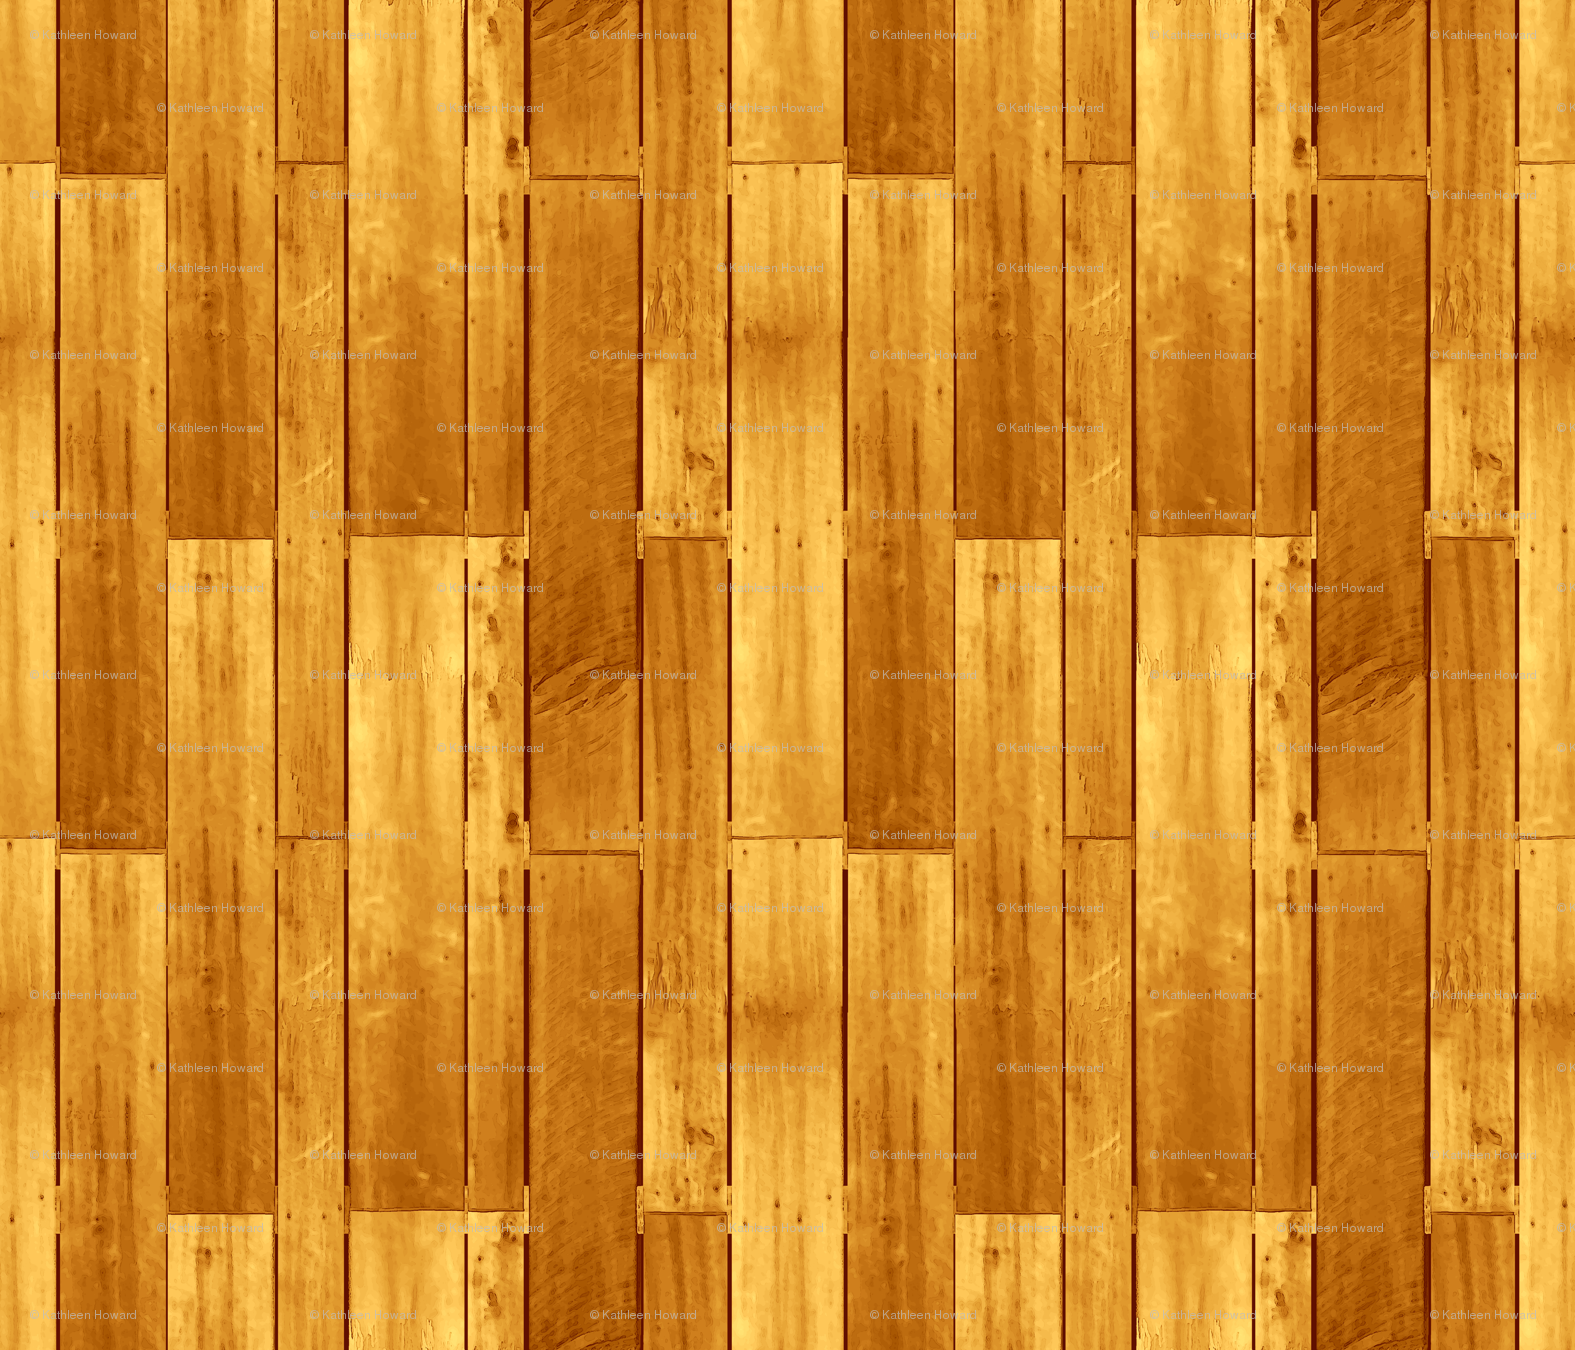 Rustic Wood Paneling barn_boards_continuous_repeat_5 wallpaper -  khowardquilts - Spoonflower - Rustic Wood Paneling Barn_boards_continuous_repeat_5 Wallpaper